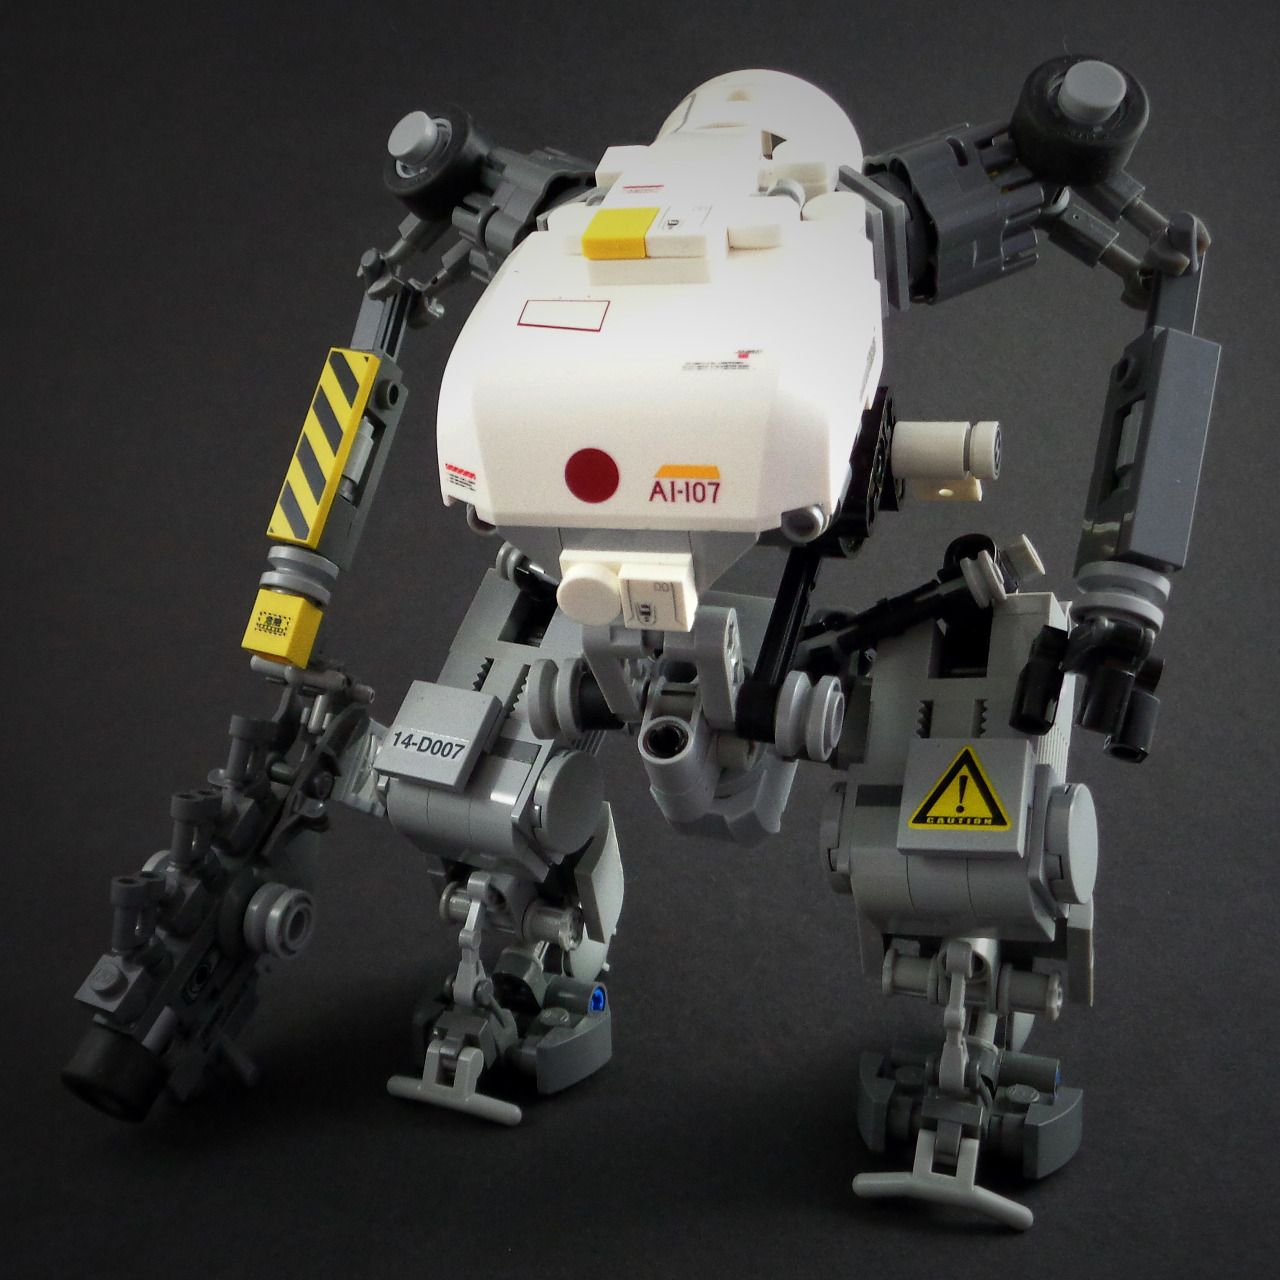 Lego mech by Marco Marozzi More robots here.